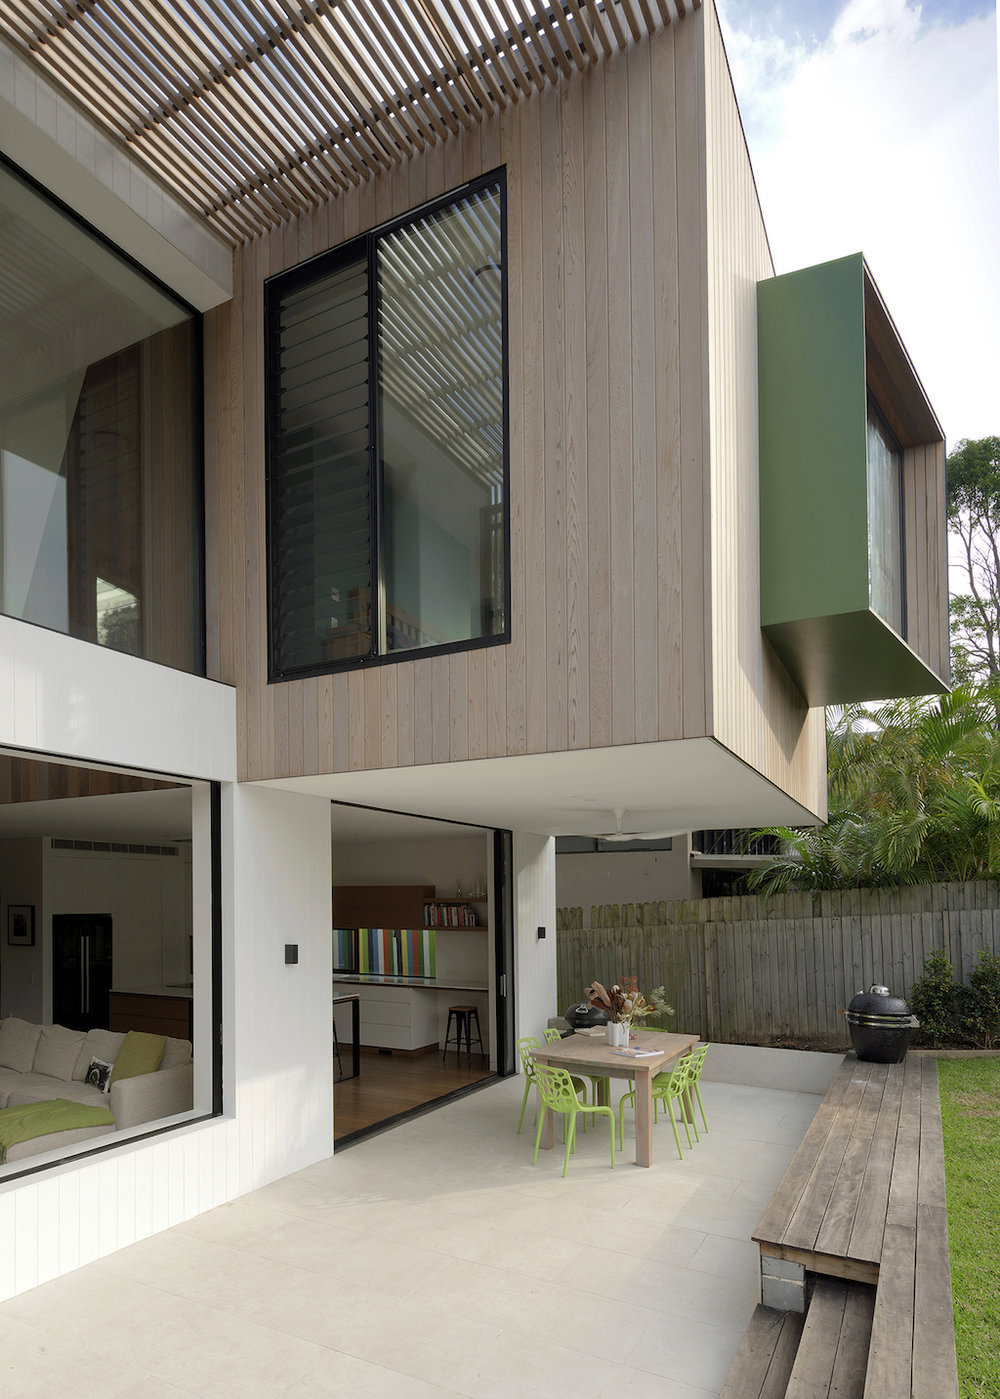 hon briggs design_Lane Cove house 2_by The Guthrie Project.jpg